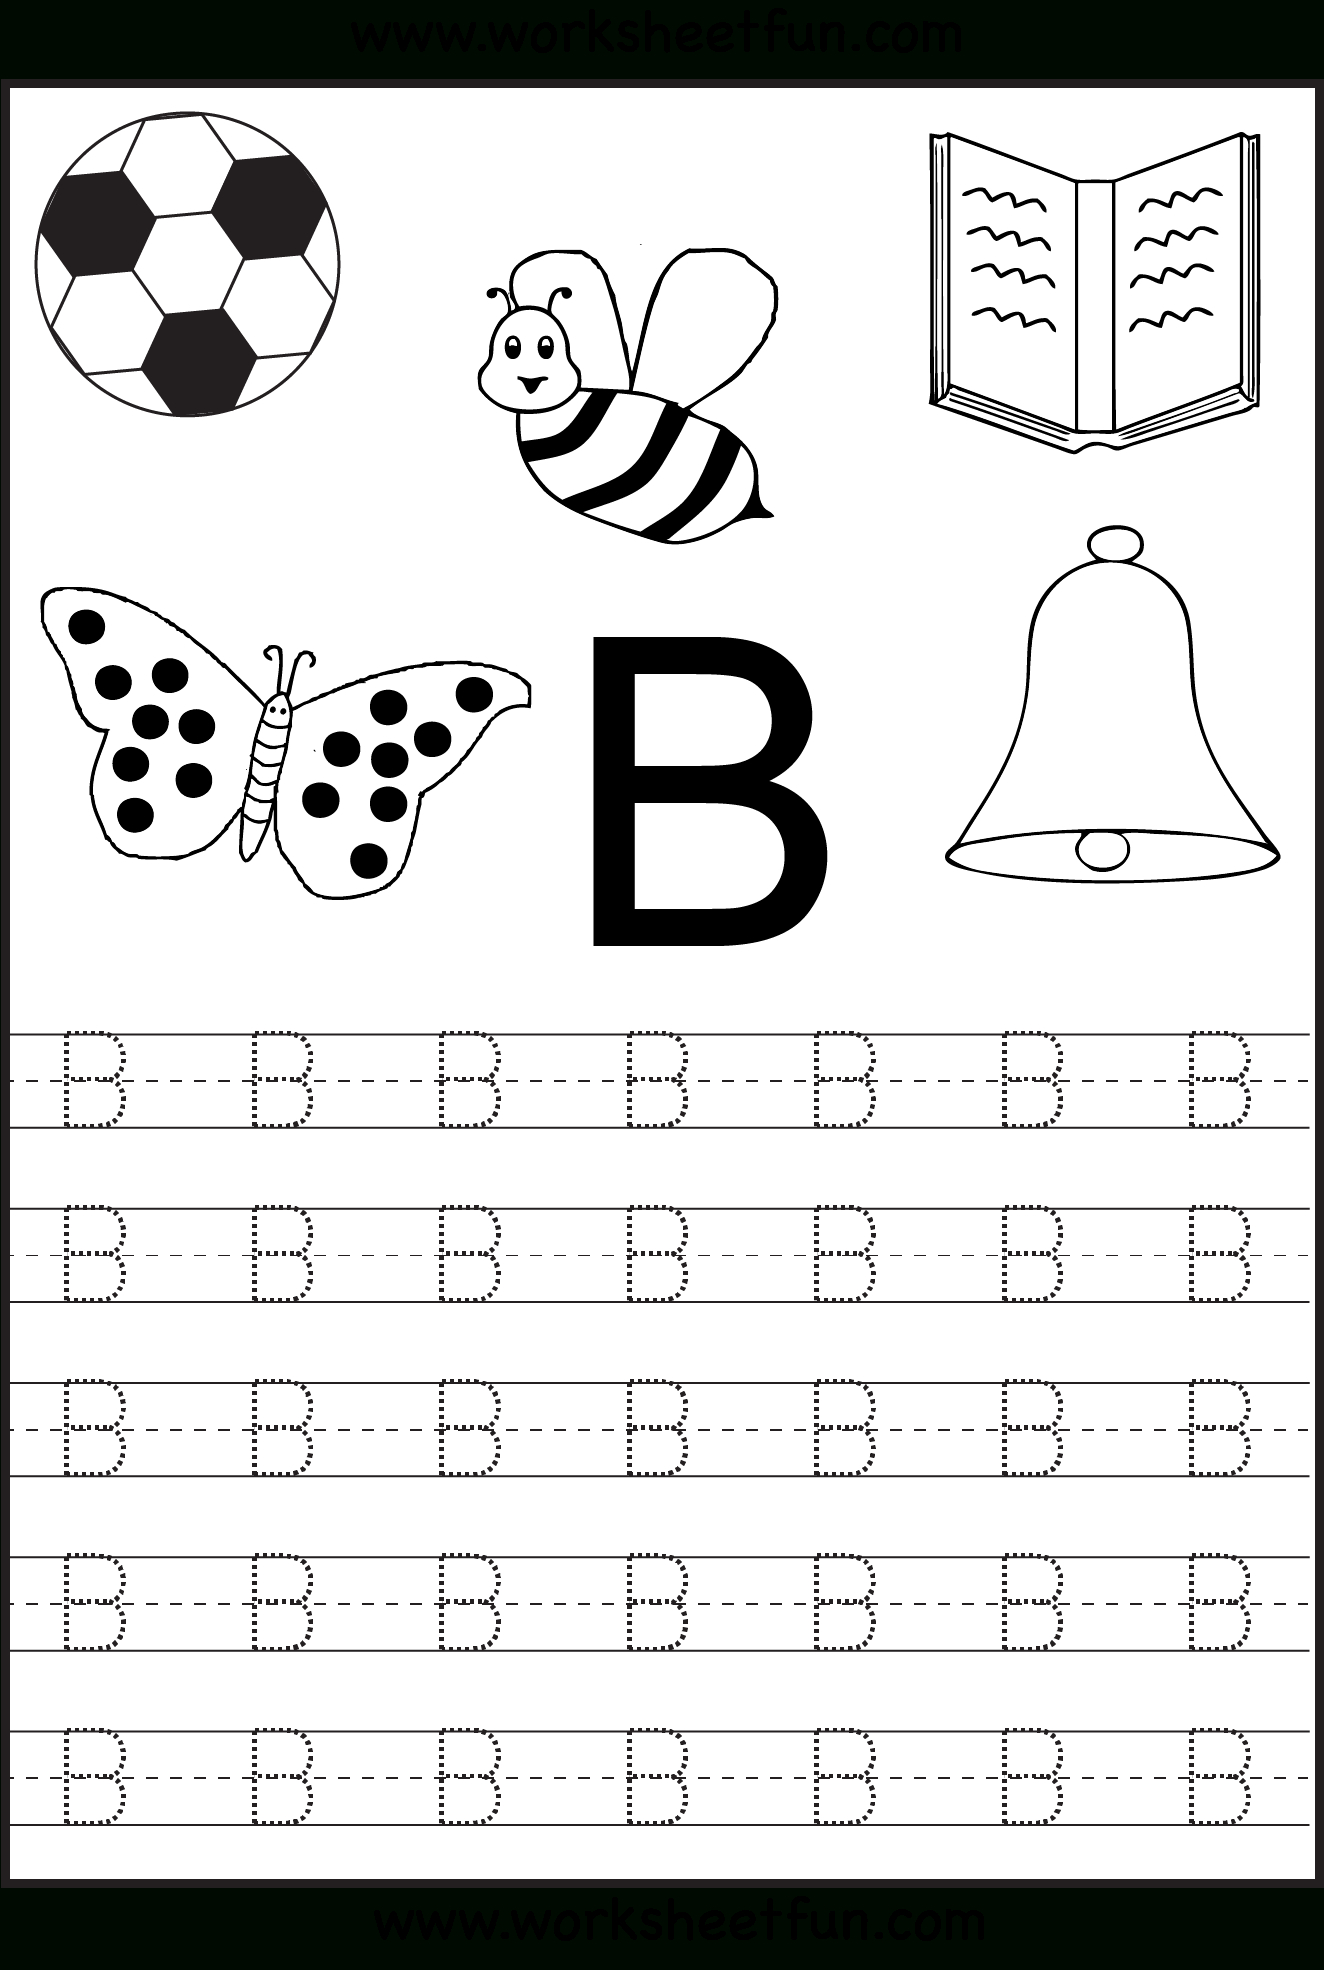 Free Printable Letter Tracing Worksheets For Kindergarten intended for Downloadable Tracing Letters